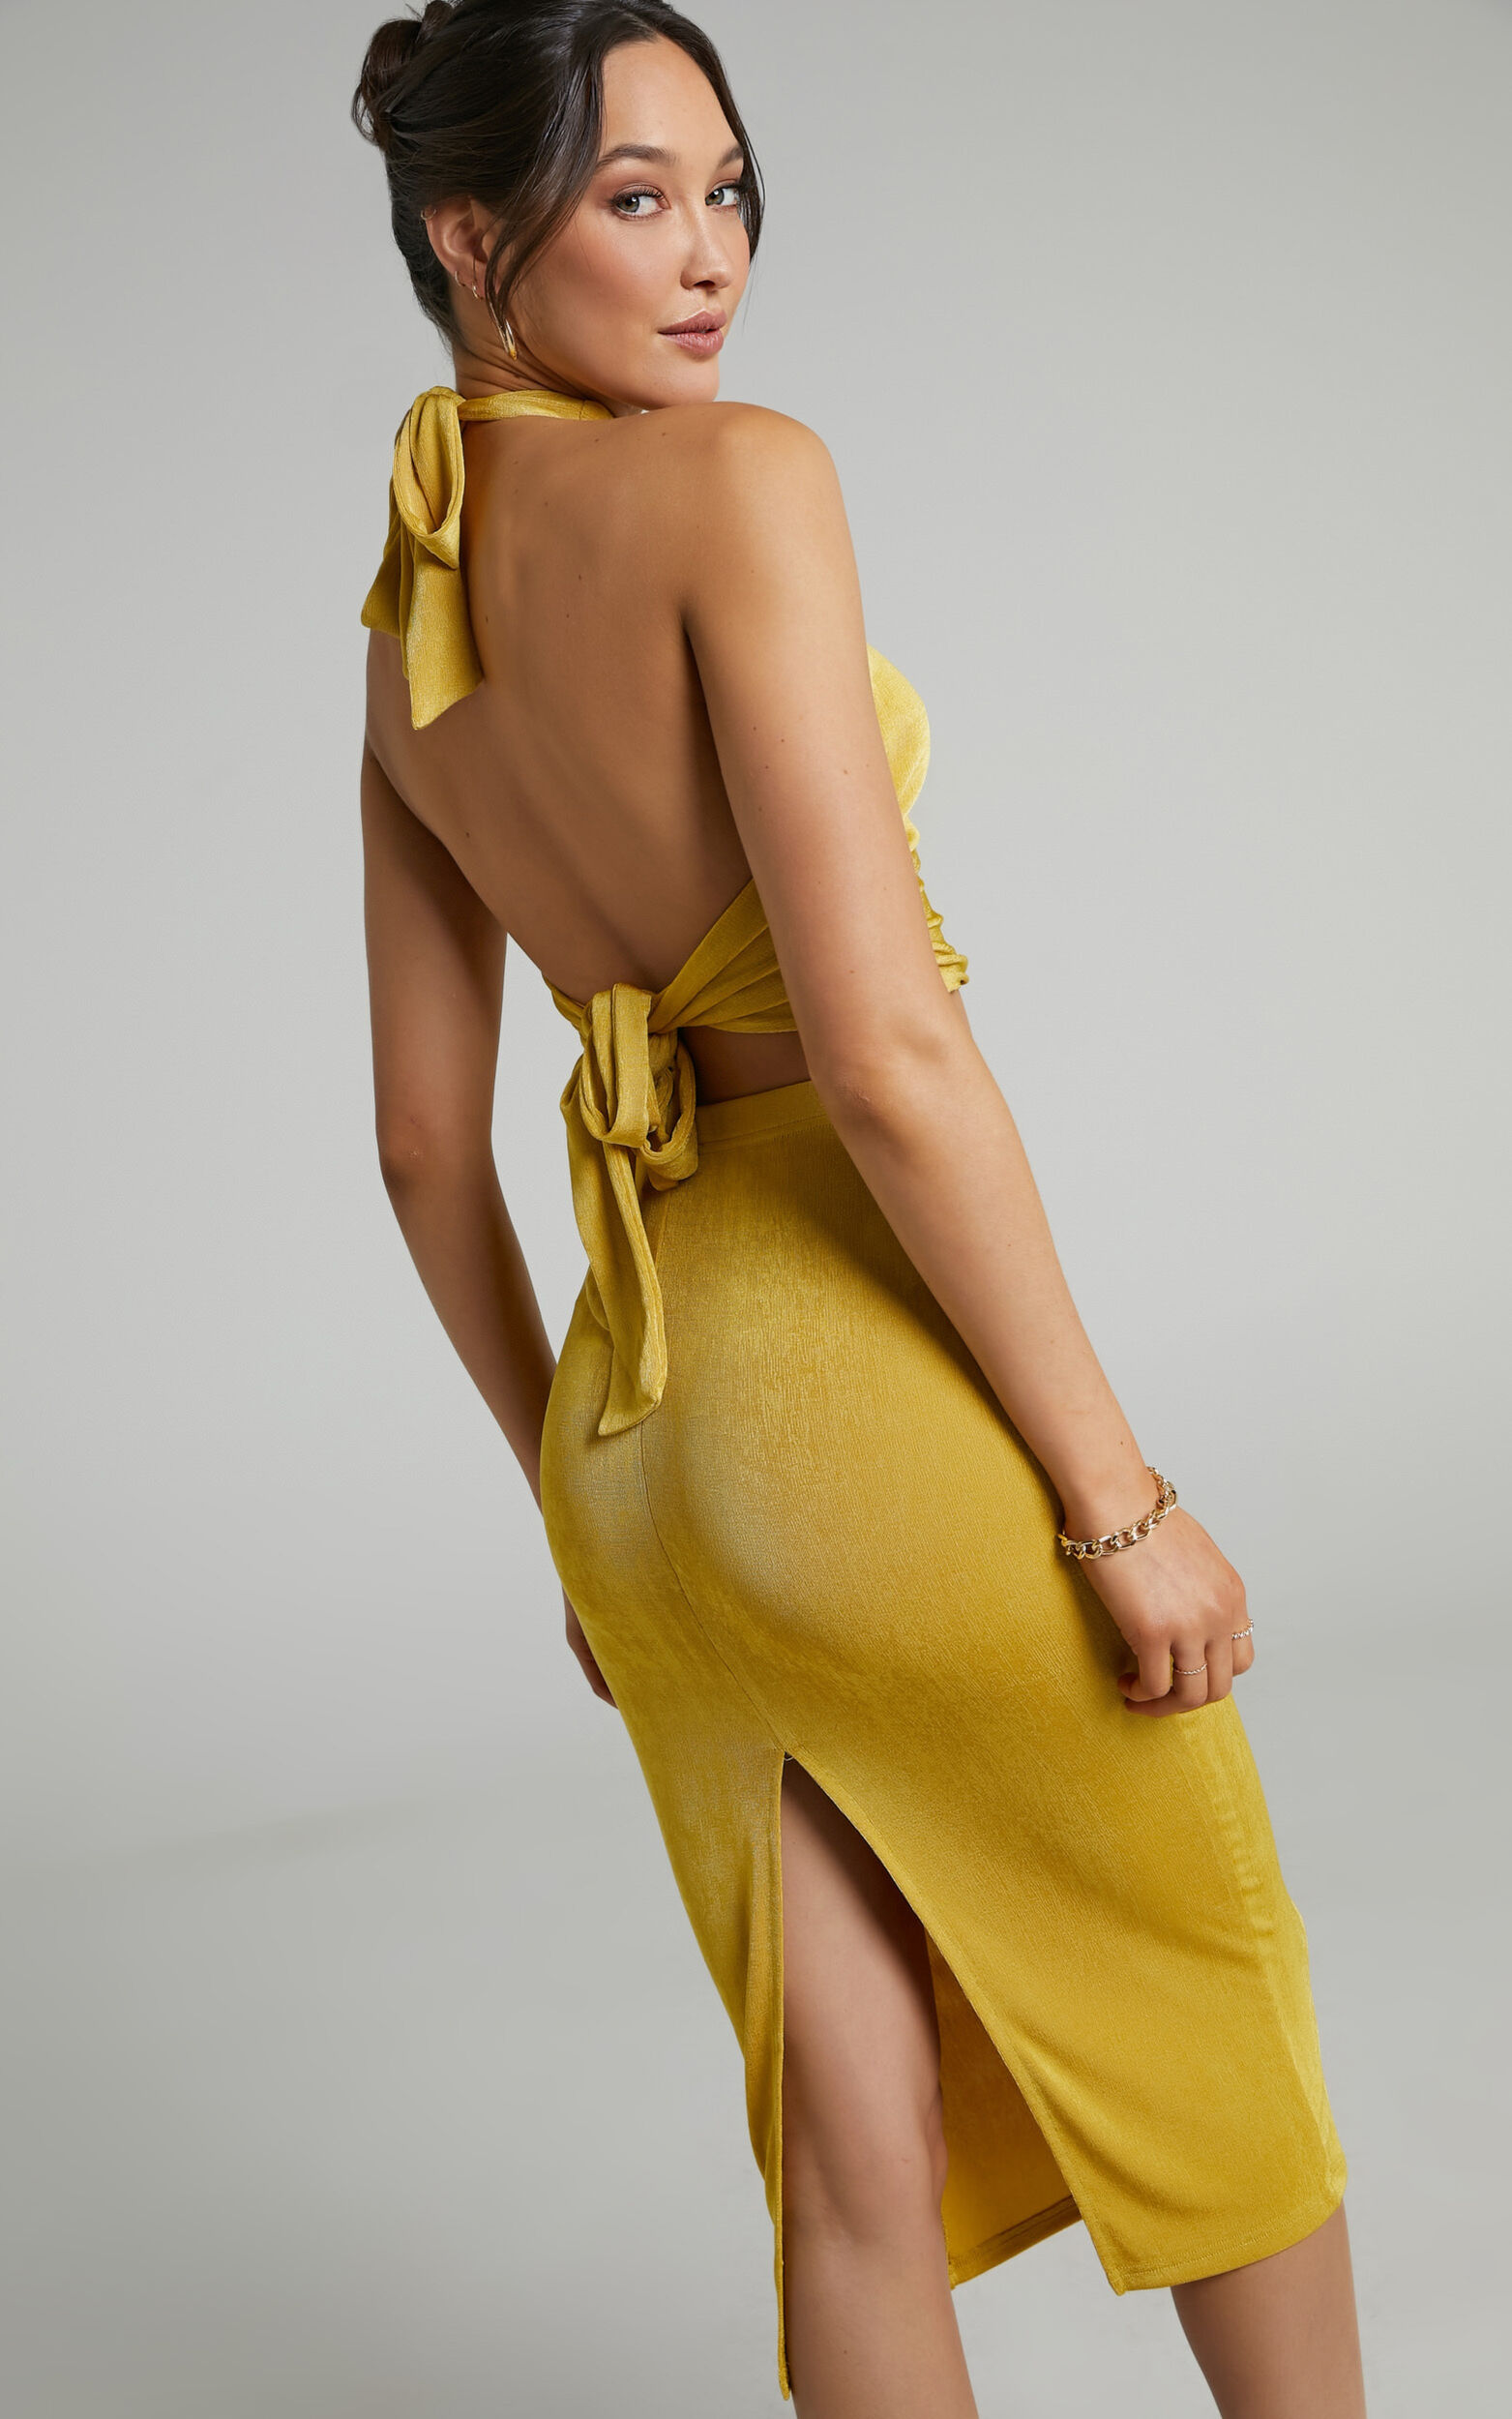 She.Is.Us - On Demand Skirt in Butterscotch - L, YEL1, super-hi-res image number null